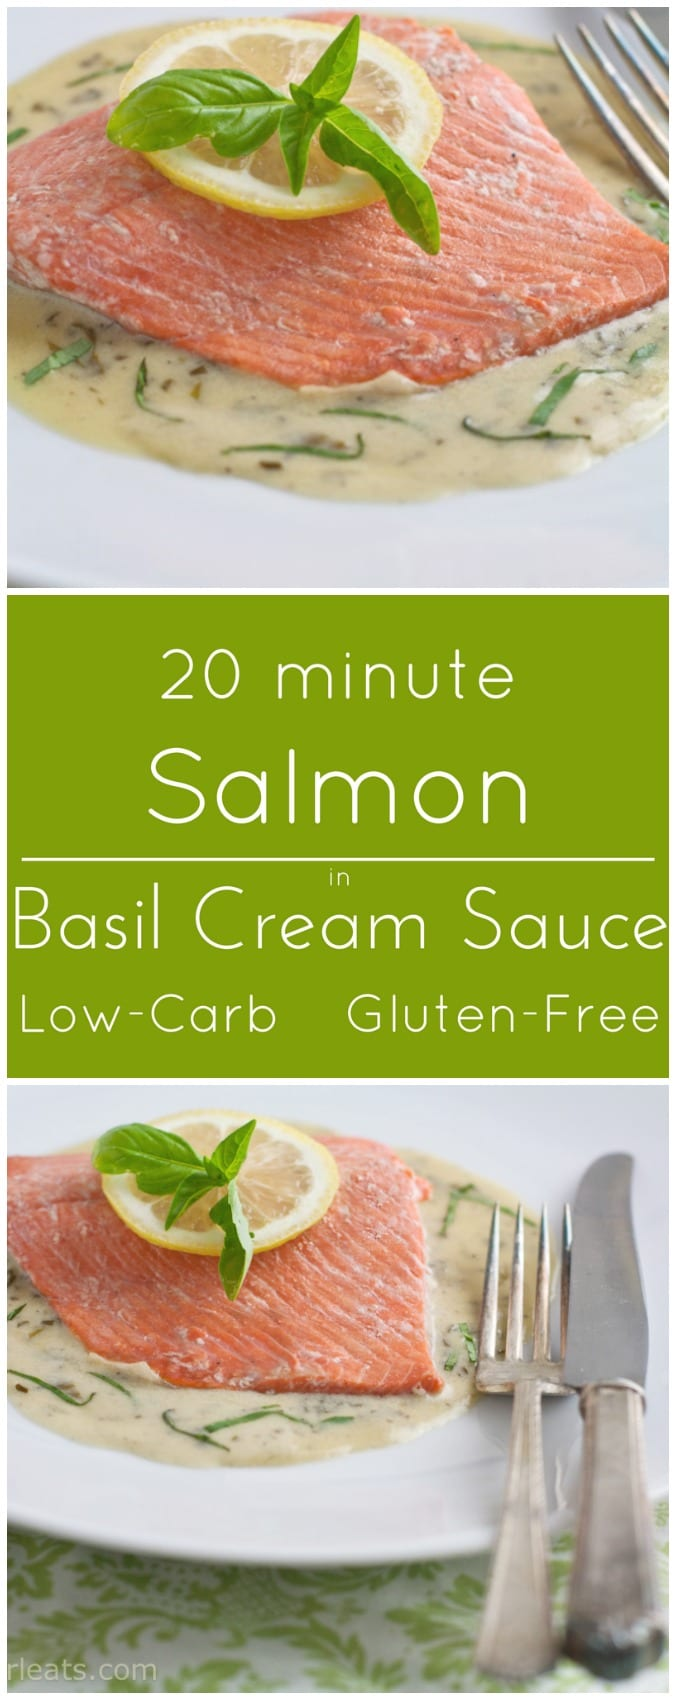 Salmon in Basil Cream